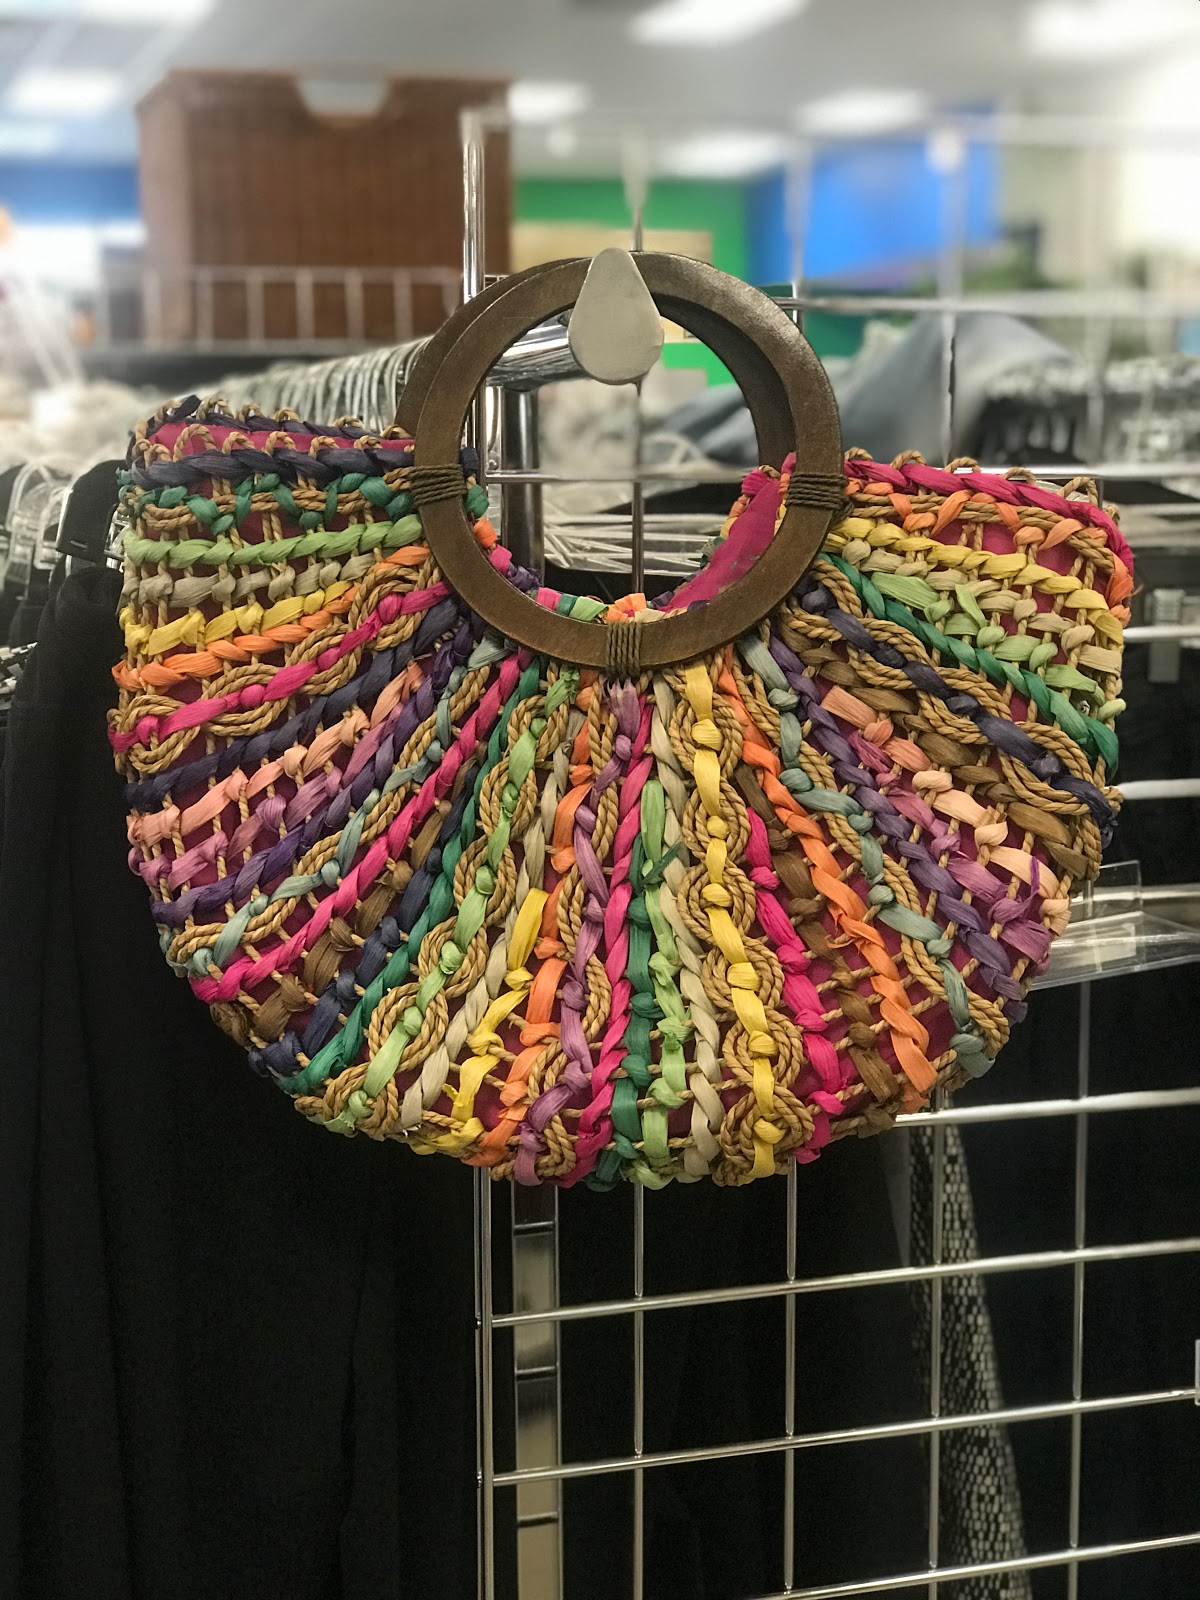 Found a basket weave hand bag from the thrift store this weekend